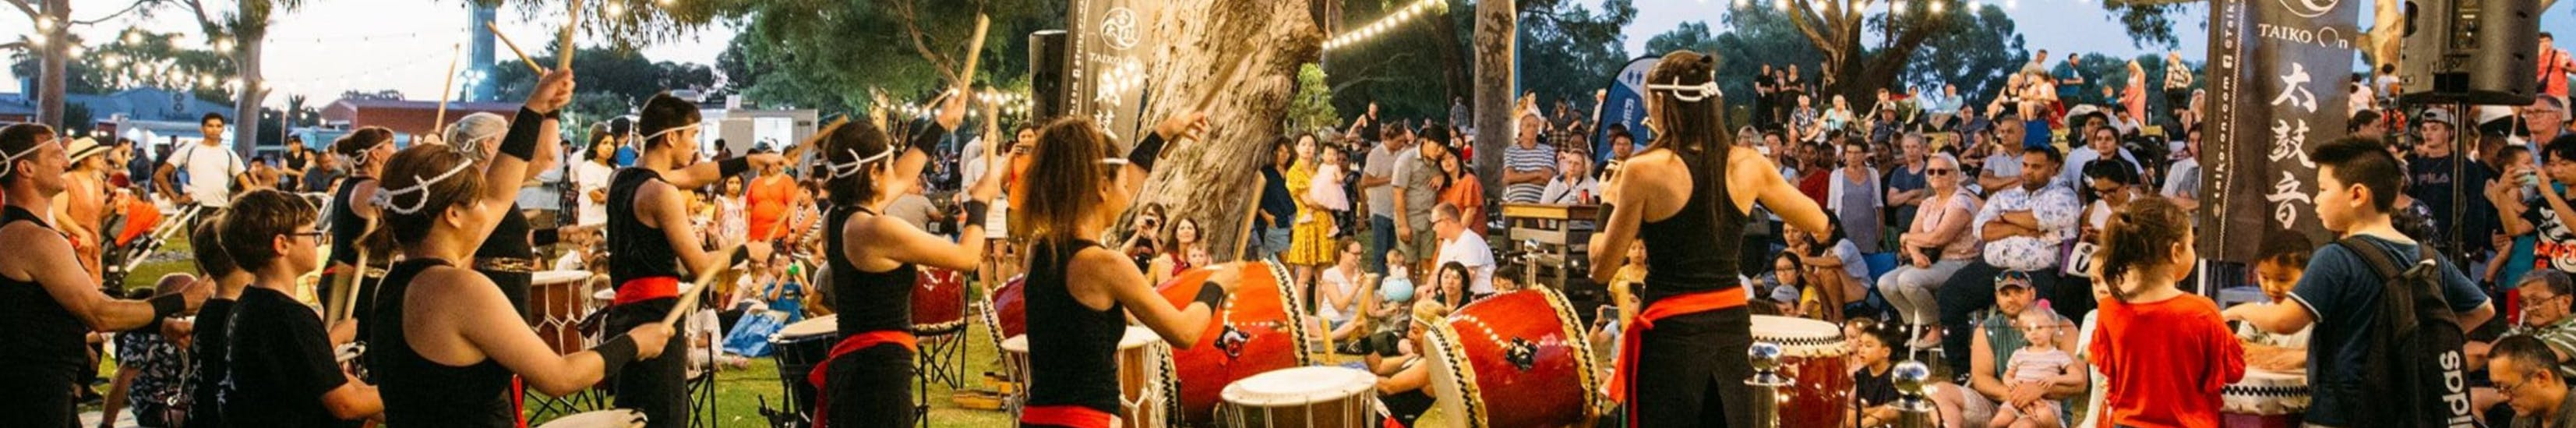 People of many backgrounds playing the drums at a festival